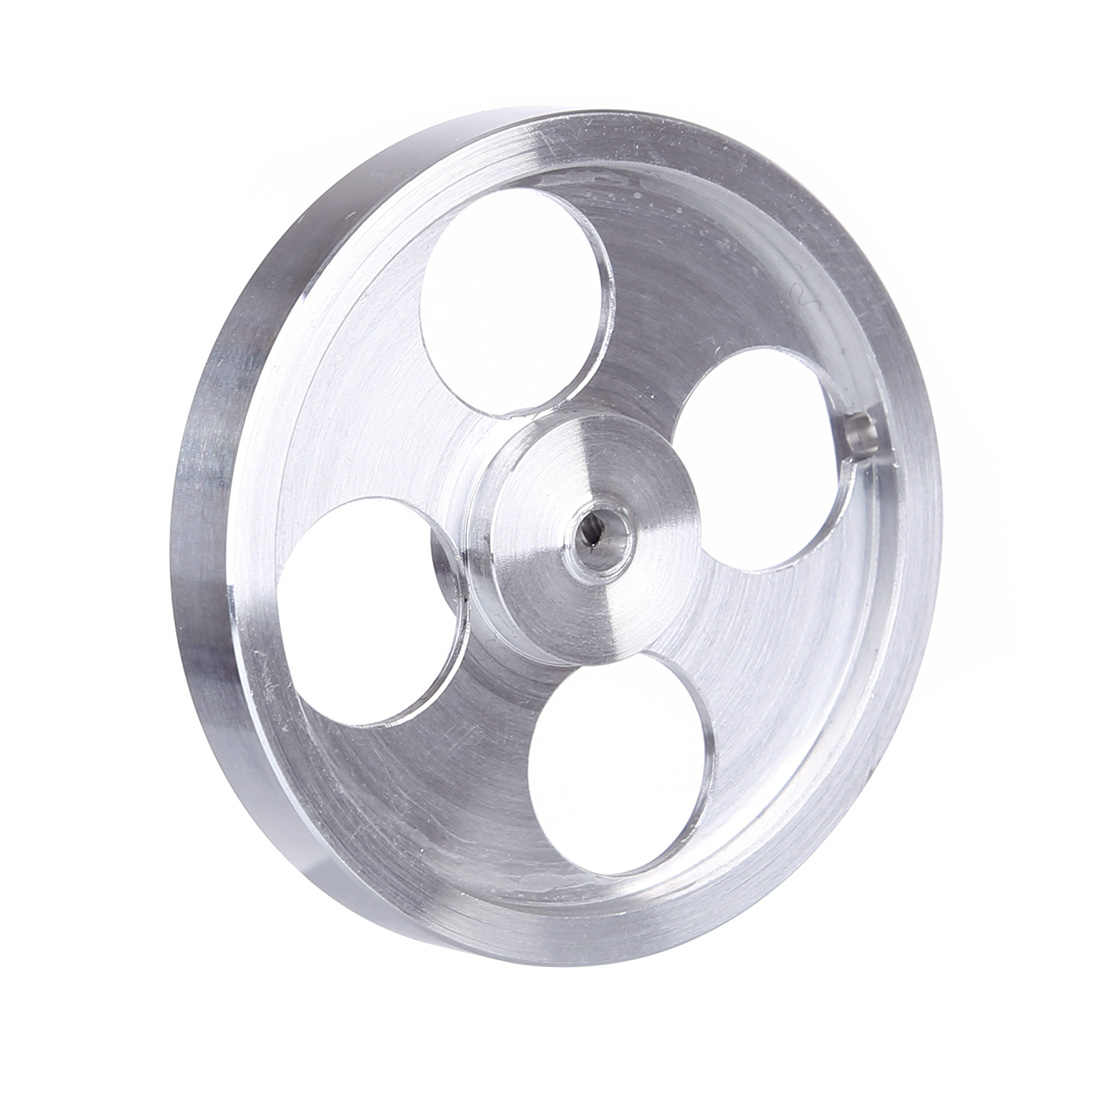 φ55 x 8mm Four-hole Aluminum Flywheel for Stirling Engine Model